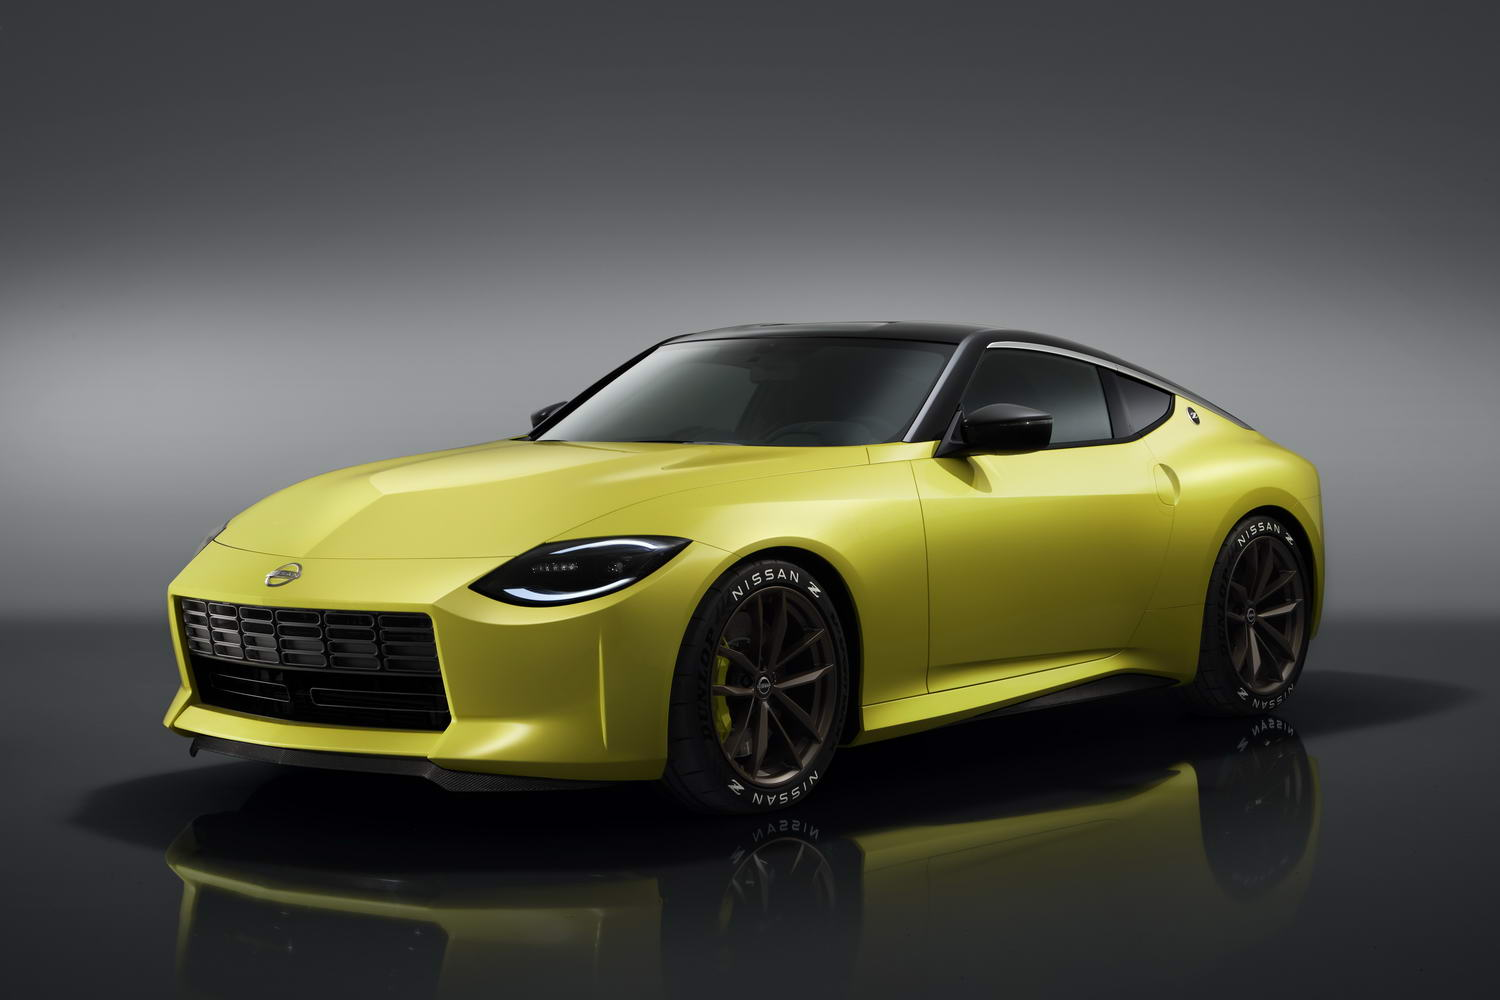 Nissan Z Proto previews new rear-drive coupe